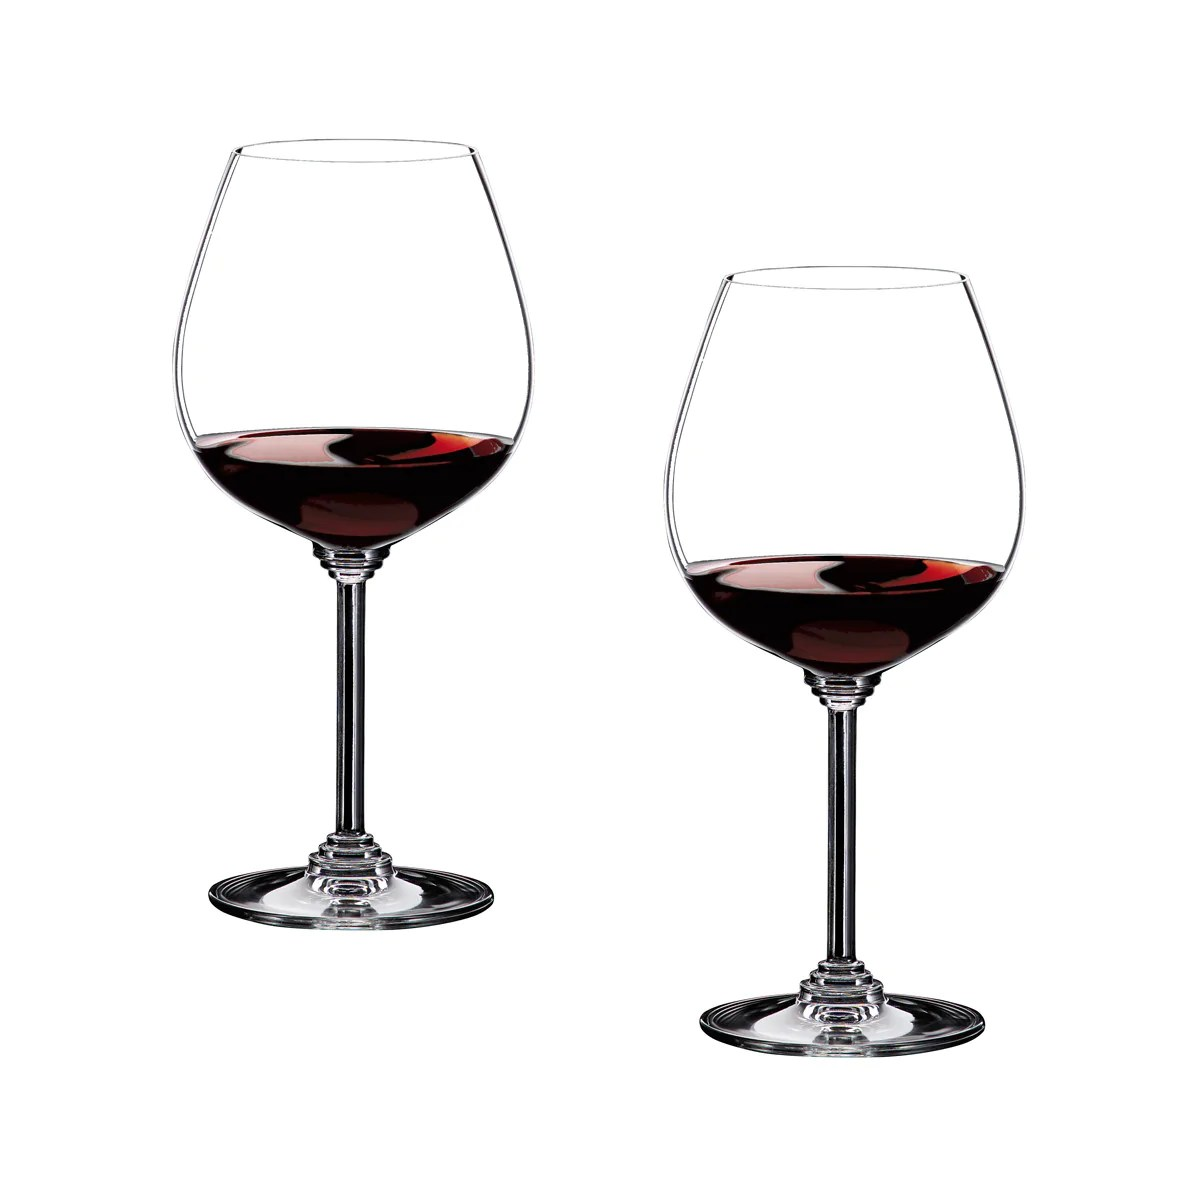 Riedel Glas Riedel Wine Pinot And Nebbiolo Glas Pair